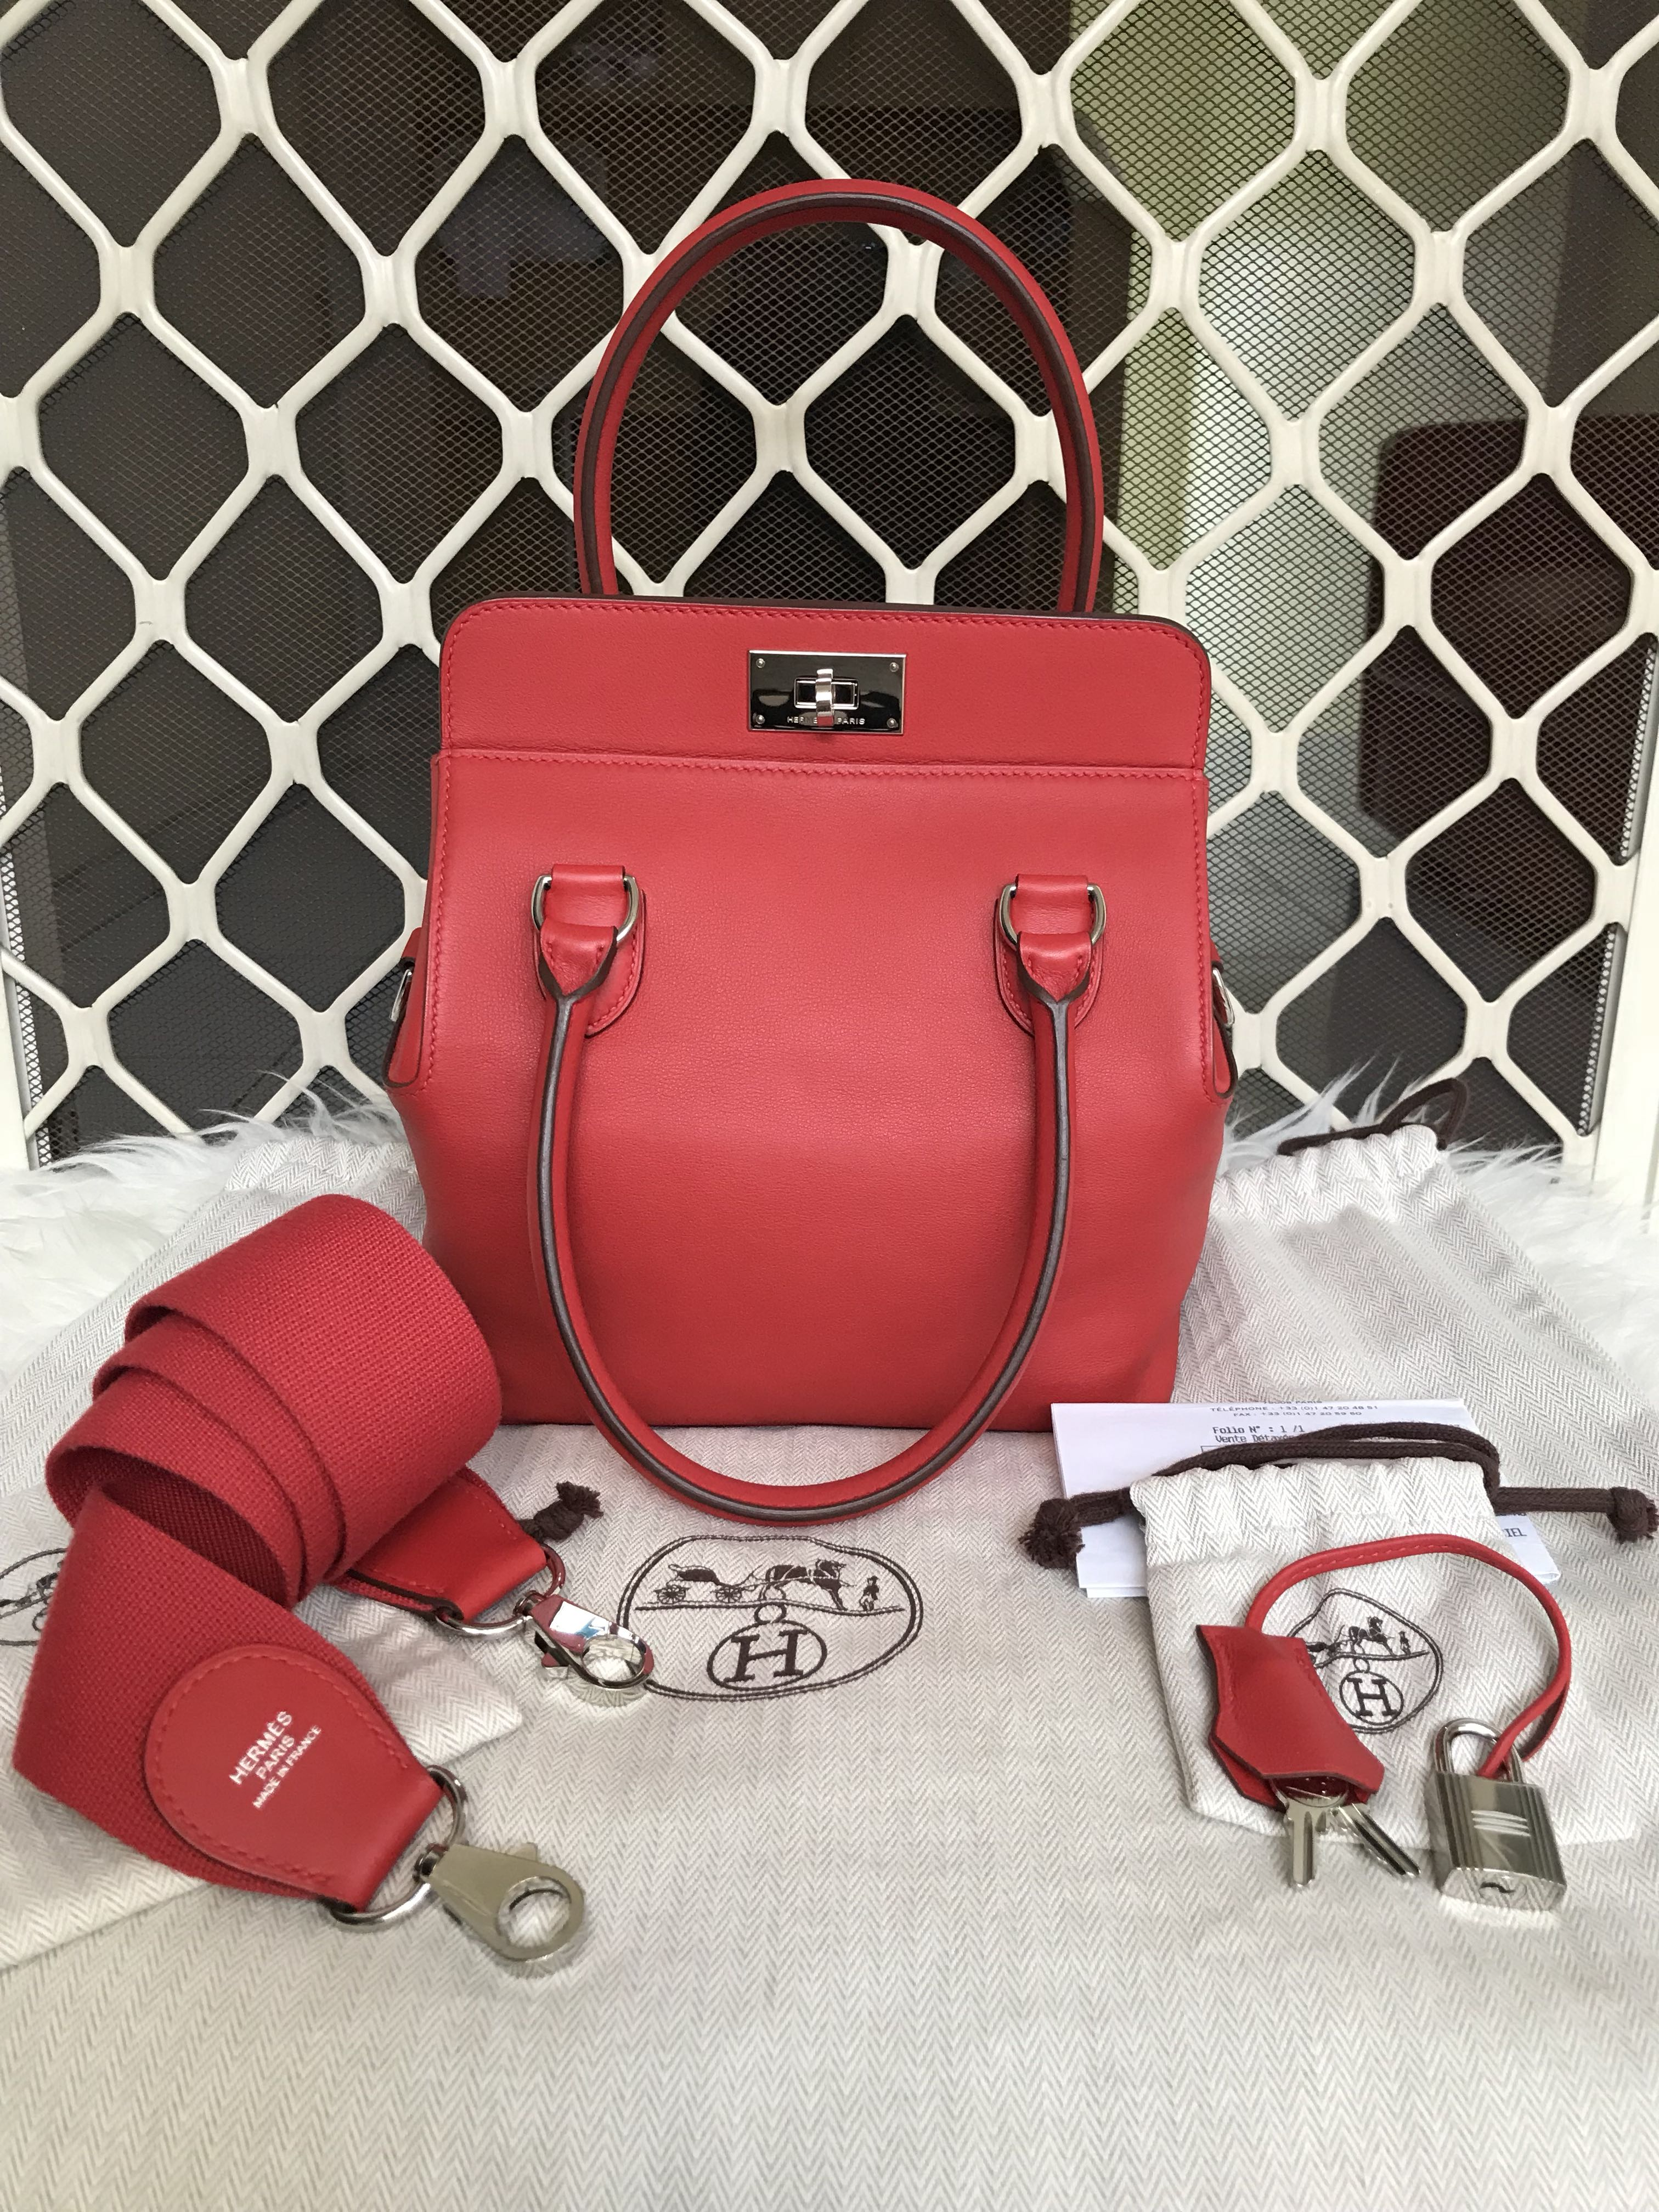 Hermes TB 20 / toolbox 20 red tomate swift # x, Luxury, Bags